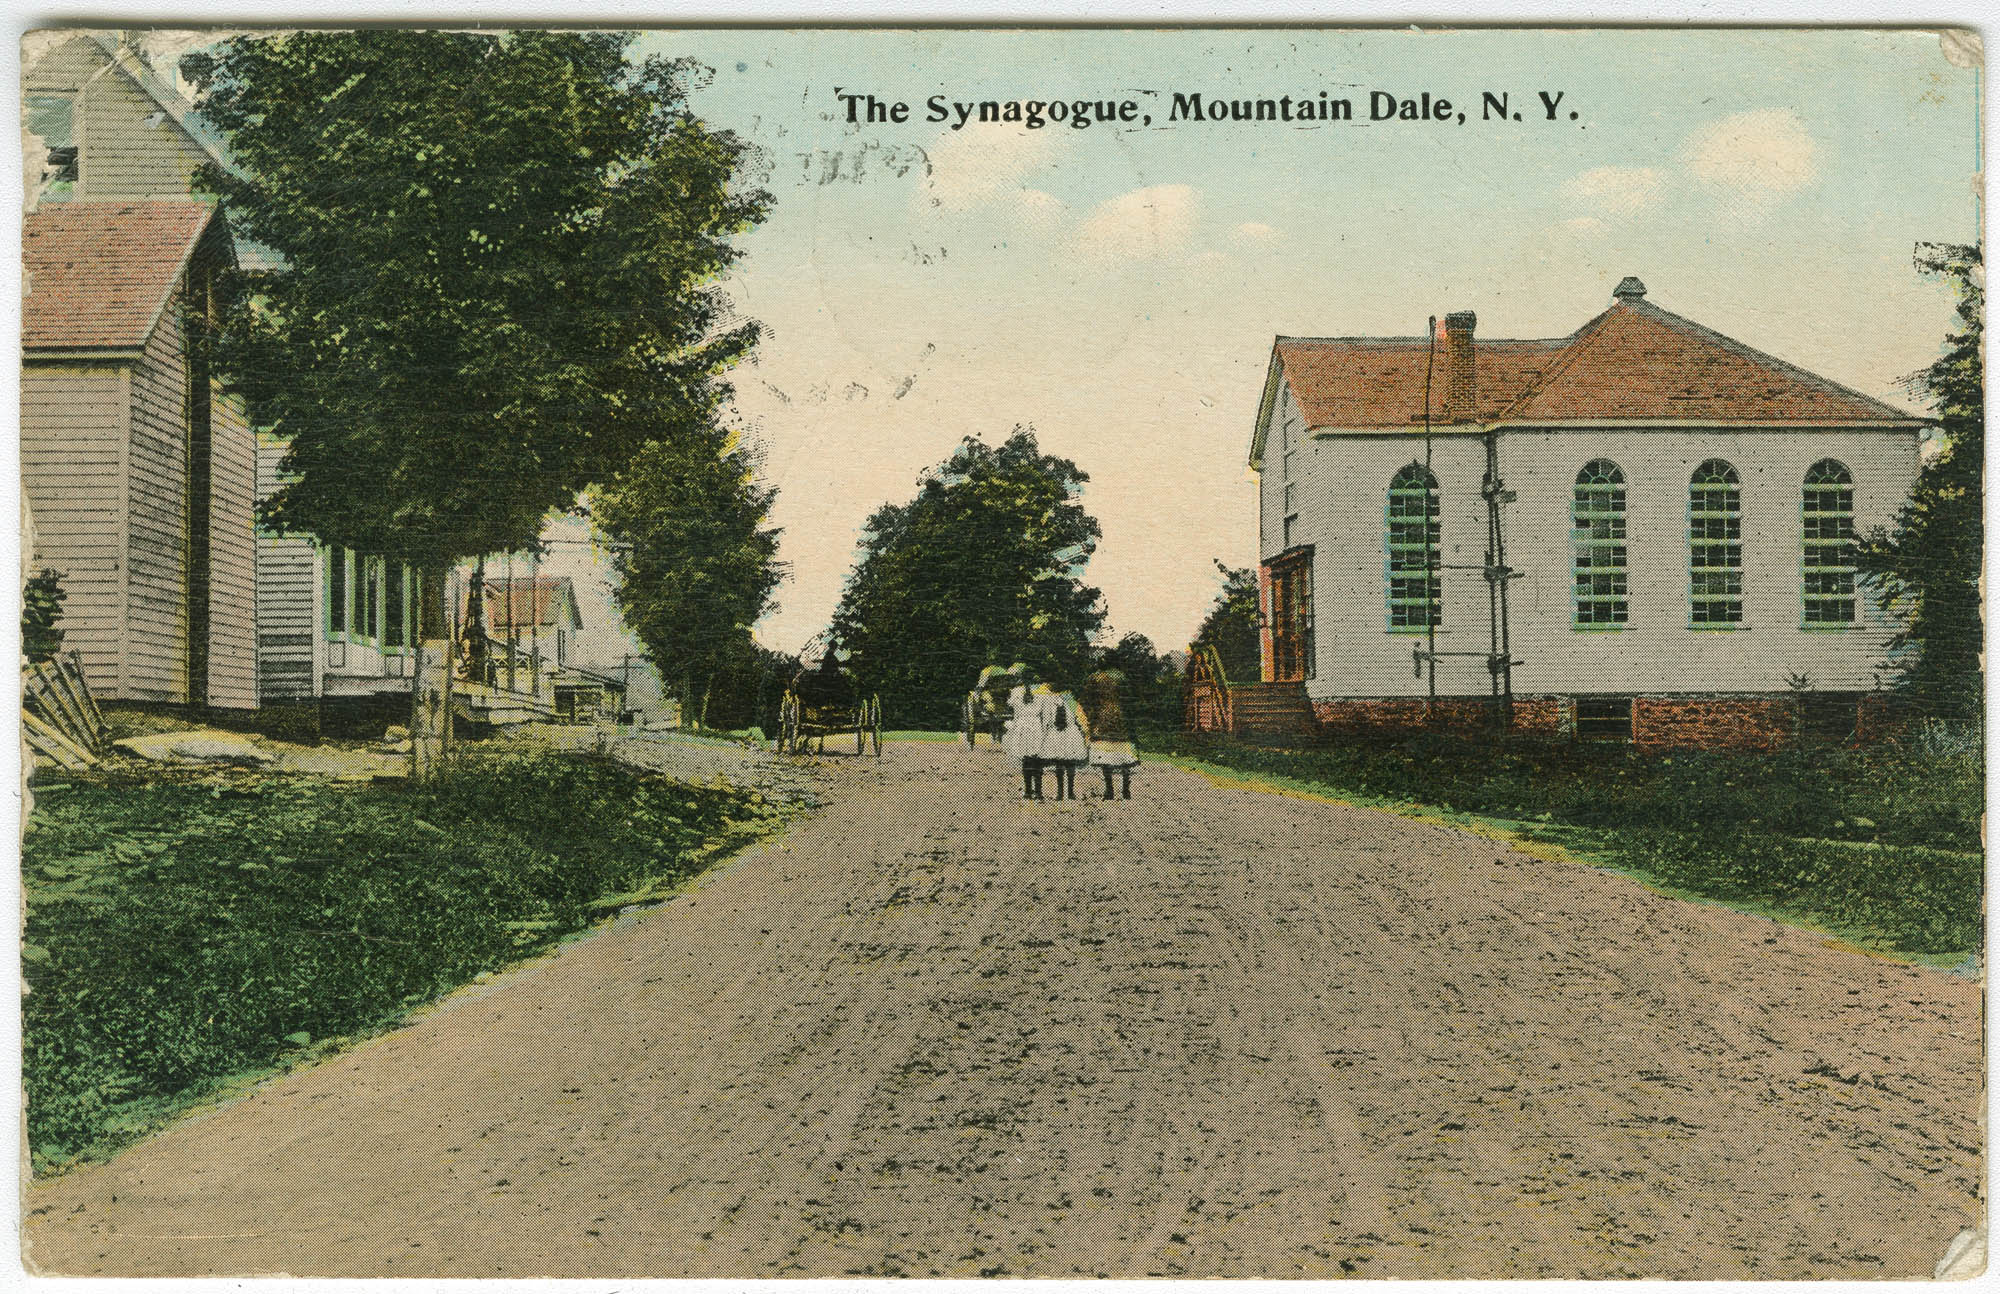 The Synagogue, Mountain Dale, N.Y.